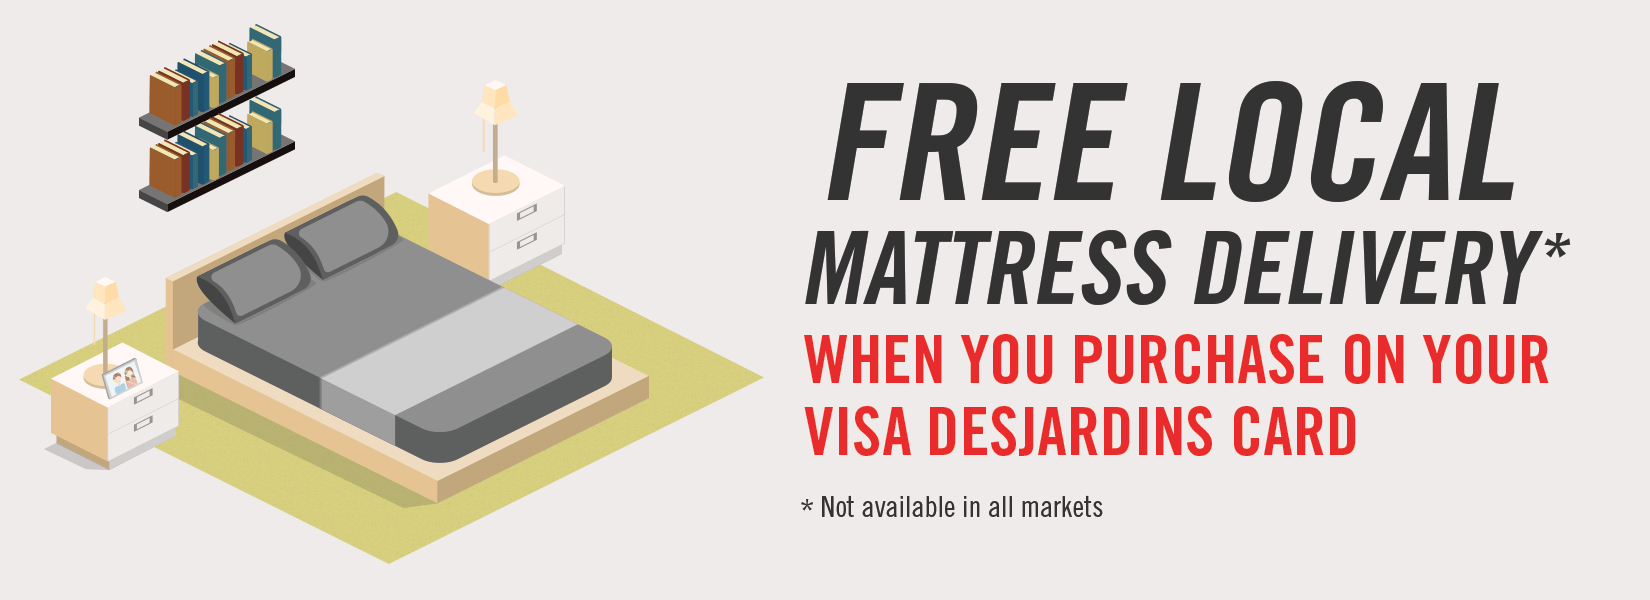 Free Local Mattress Delivery